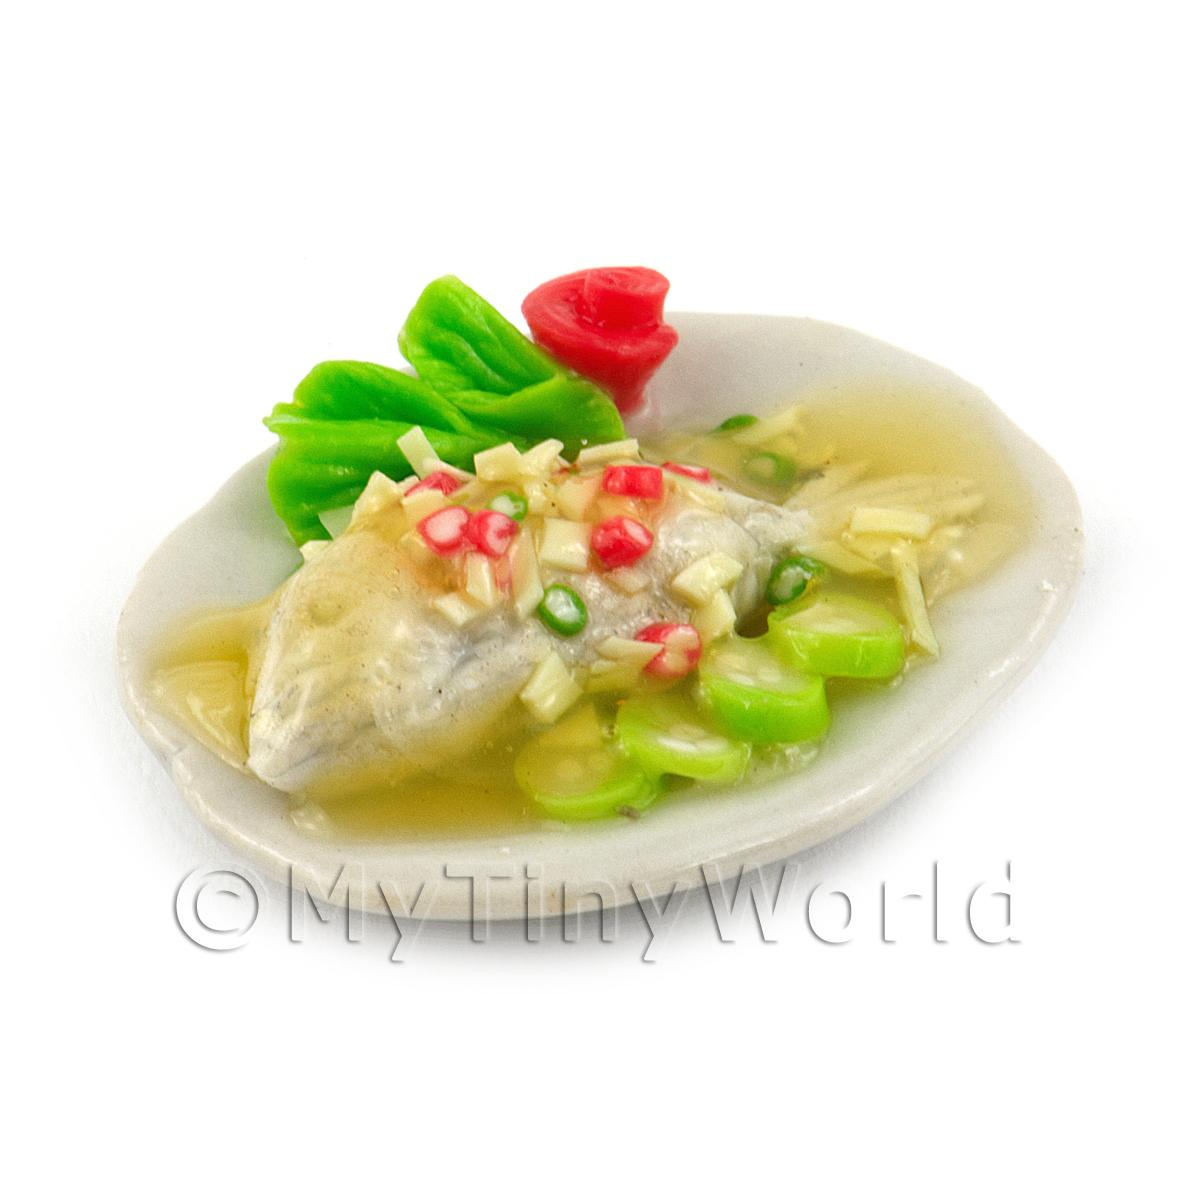 Dolls House Miniature Whole Cooked Steamed Fish With Garlic and Chilli